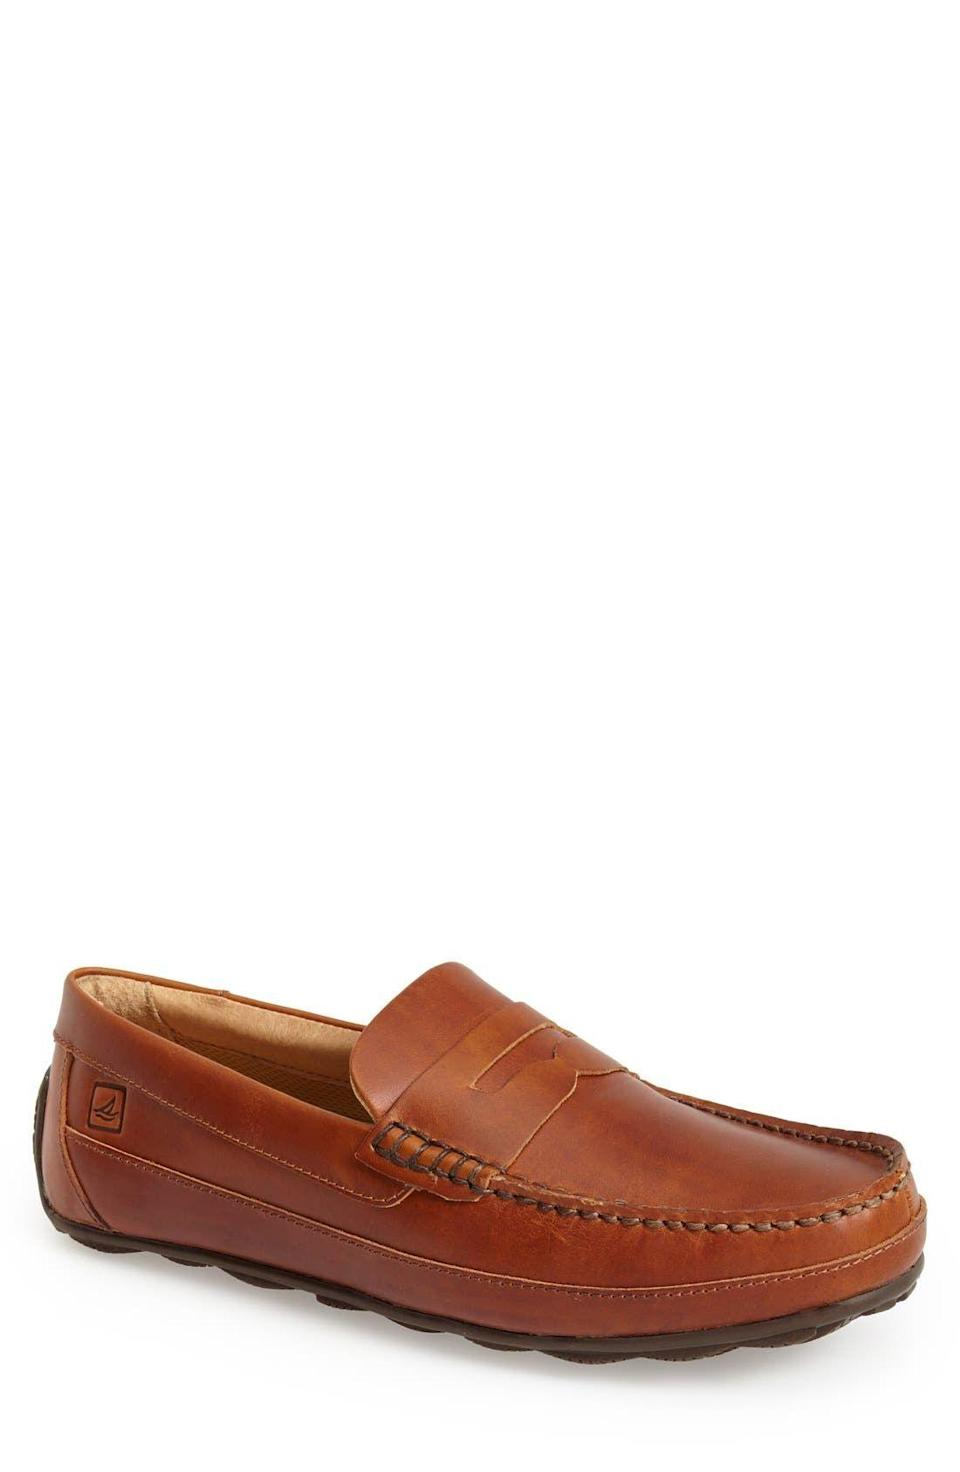 """<p><strong>SPERRY</strong></p><p>nordstrom.com</p><p><strong>$99.95</strong></p><p><a href=""""https://go.redirectingat.com?id=74968X1596630&url=https%3A%2F%2Fshop.nordstrom.com%2Fs%2Fsperry-hampden-penny-loafer-men%2F3912548&sref=https%3A%2F%2Fwww.esquire.com%2Fstyle%2Fmens-fashion%2Fg28186249%2Fbusiness-casual-shoes%2F"""" rel=""""nofollow noopener"""" target=""""_blank"""" data-ylk=""""slk:Shop Now"""" class=""""link rapid-noclick-resp"""">Shop Now</a></p><p>If you're not looking to overdo the latter half of """"business casual,"""" a penny loafer is your friend. Wear it jeans and a sports jacket, or tapered slacks and sleek sweater, and you're all set. </p>"""